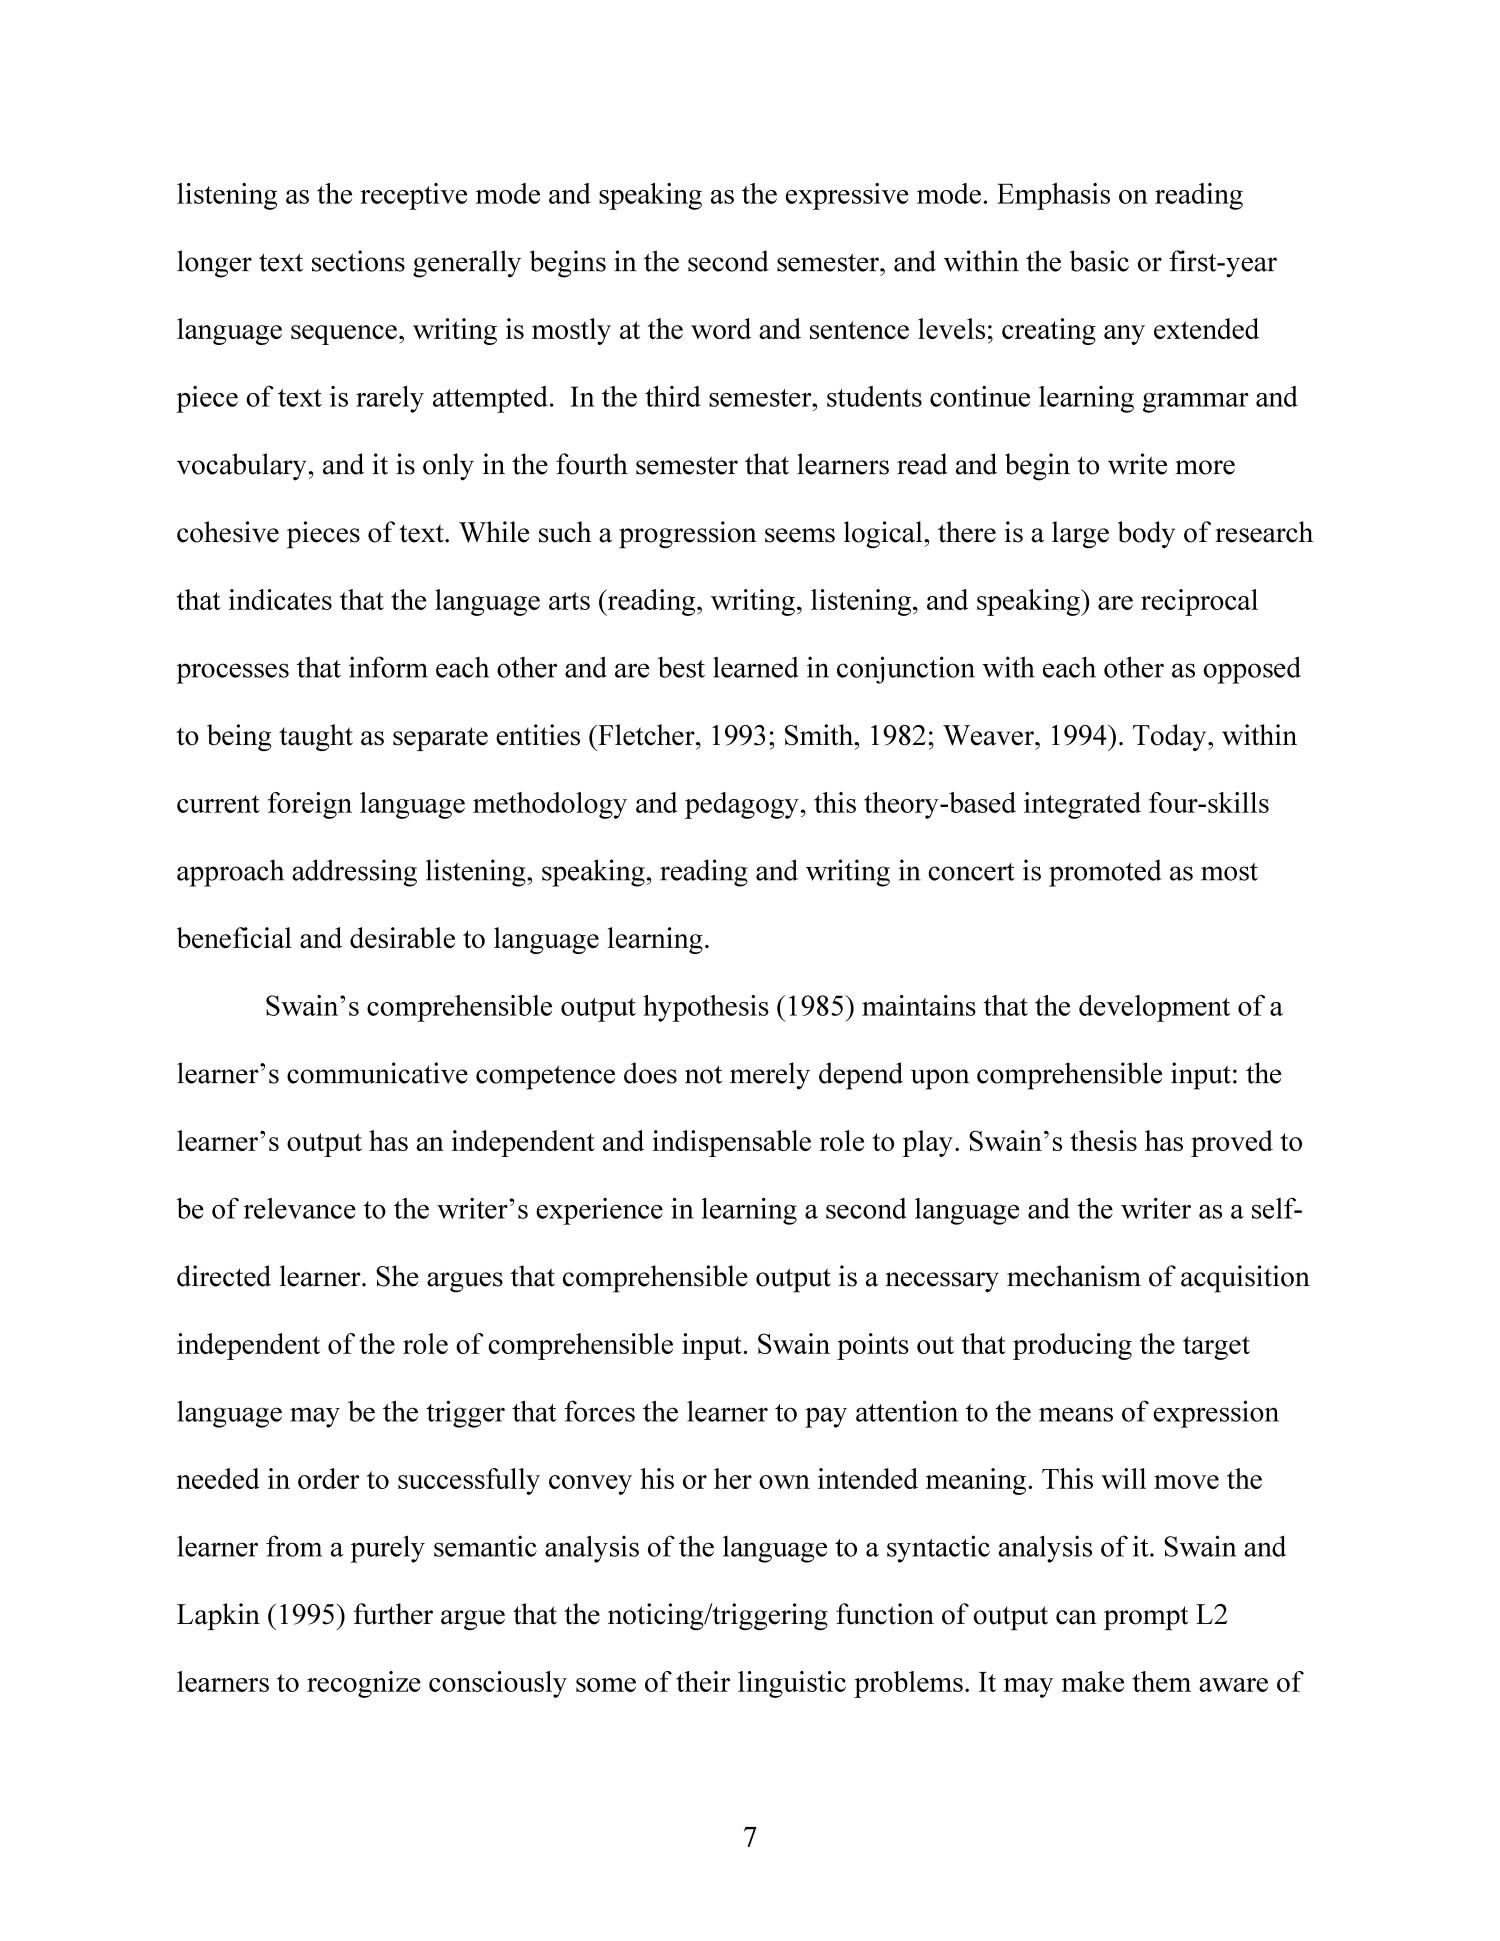 Effects of Technology-Enhanced Language Learning on Second Language Composition of University-Level Intermediate Spanish Students                                                                                                      7